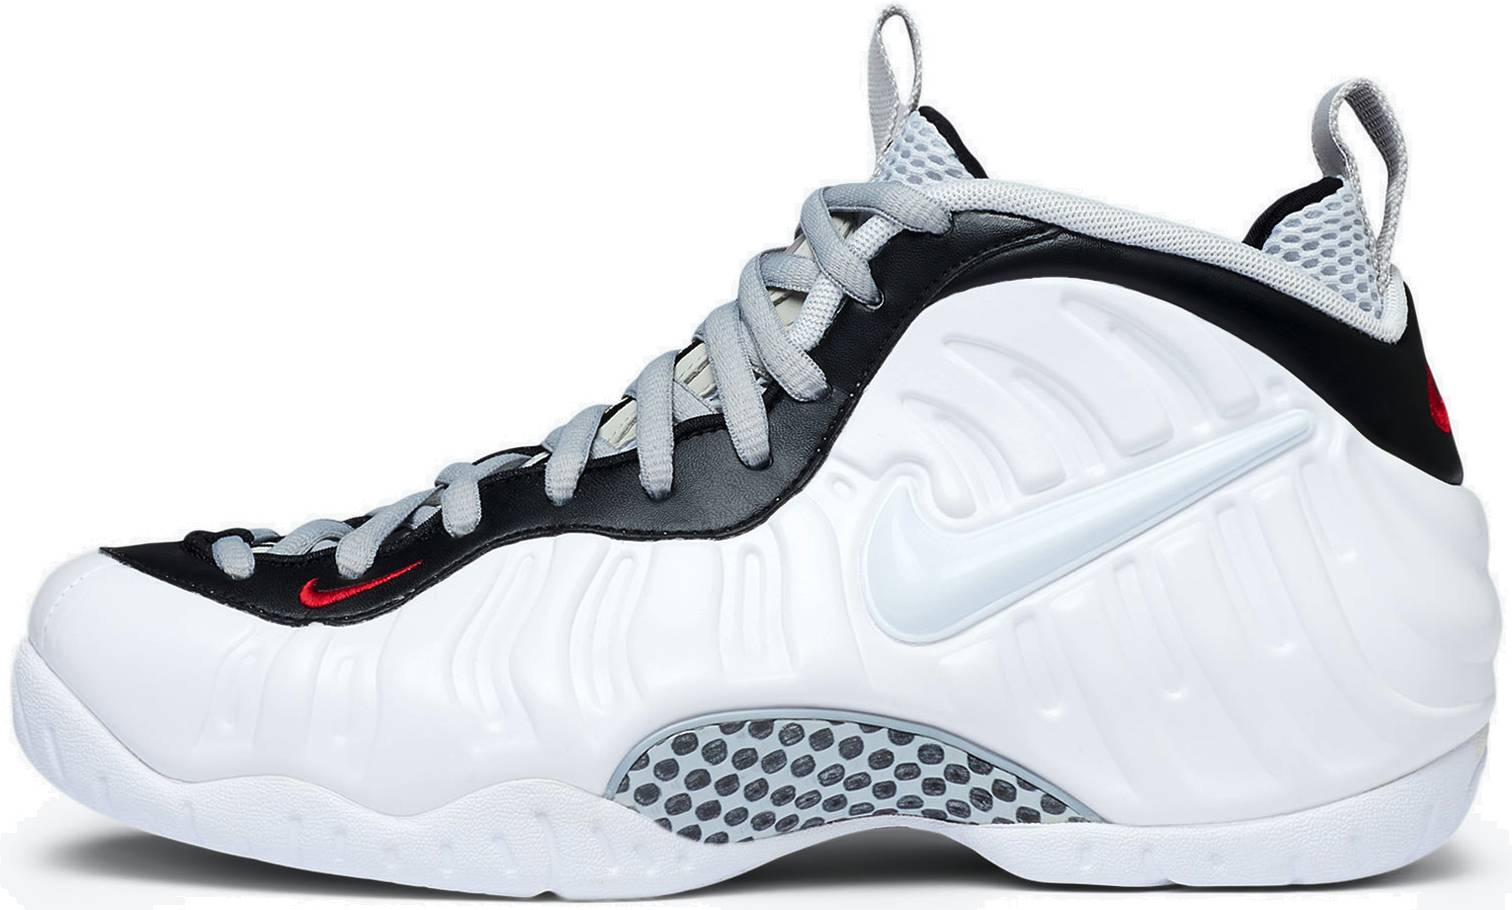 Men s Air Foamposite One Retro Cushioning Basketball Shoes ...